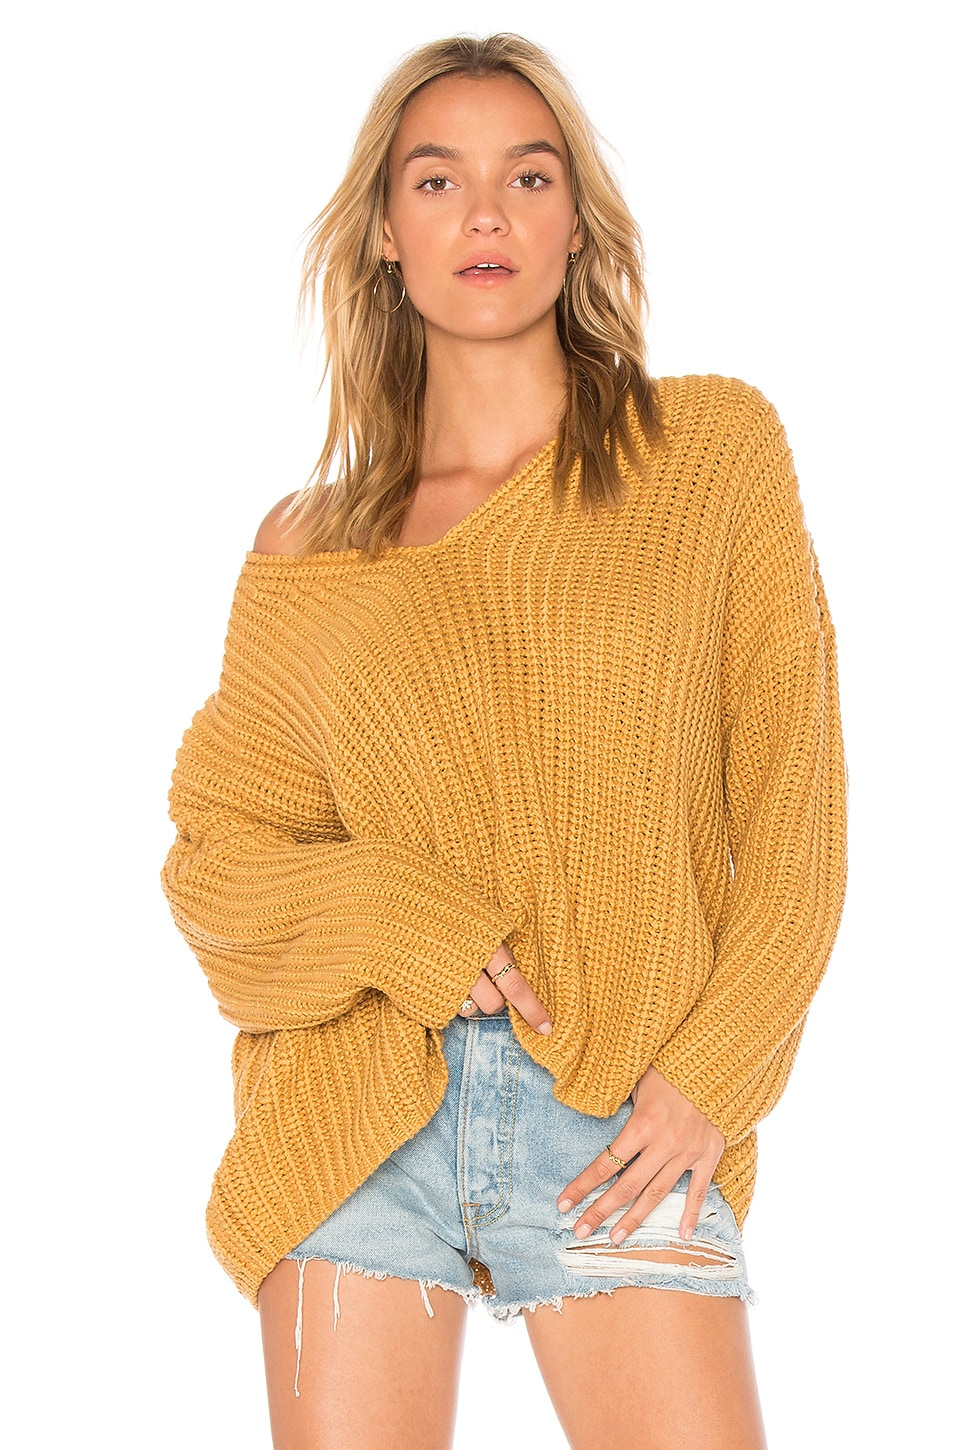 Tularosa Adams Sweater in Mustard & Ochre